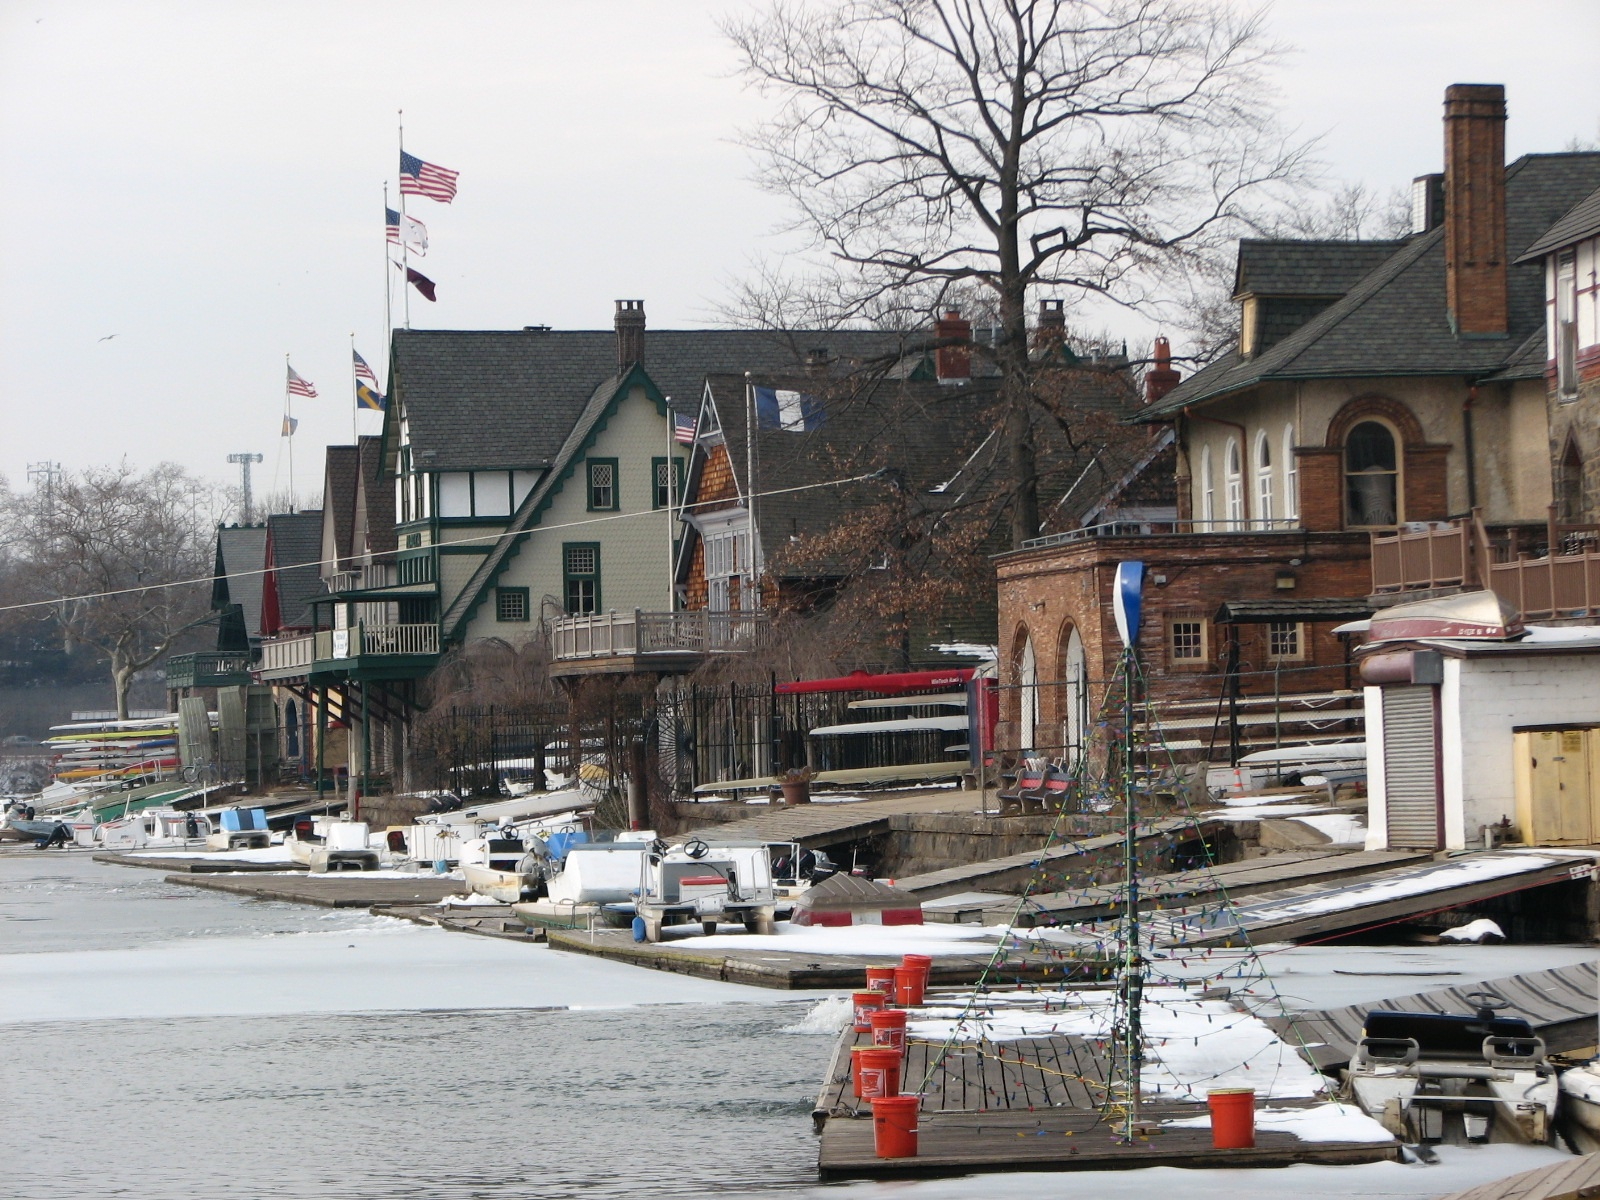 Looking west along the waterfront of Boathouse Row.